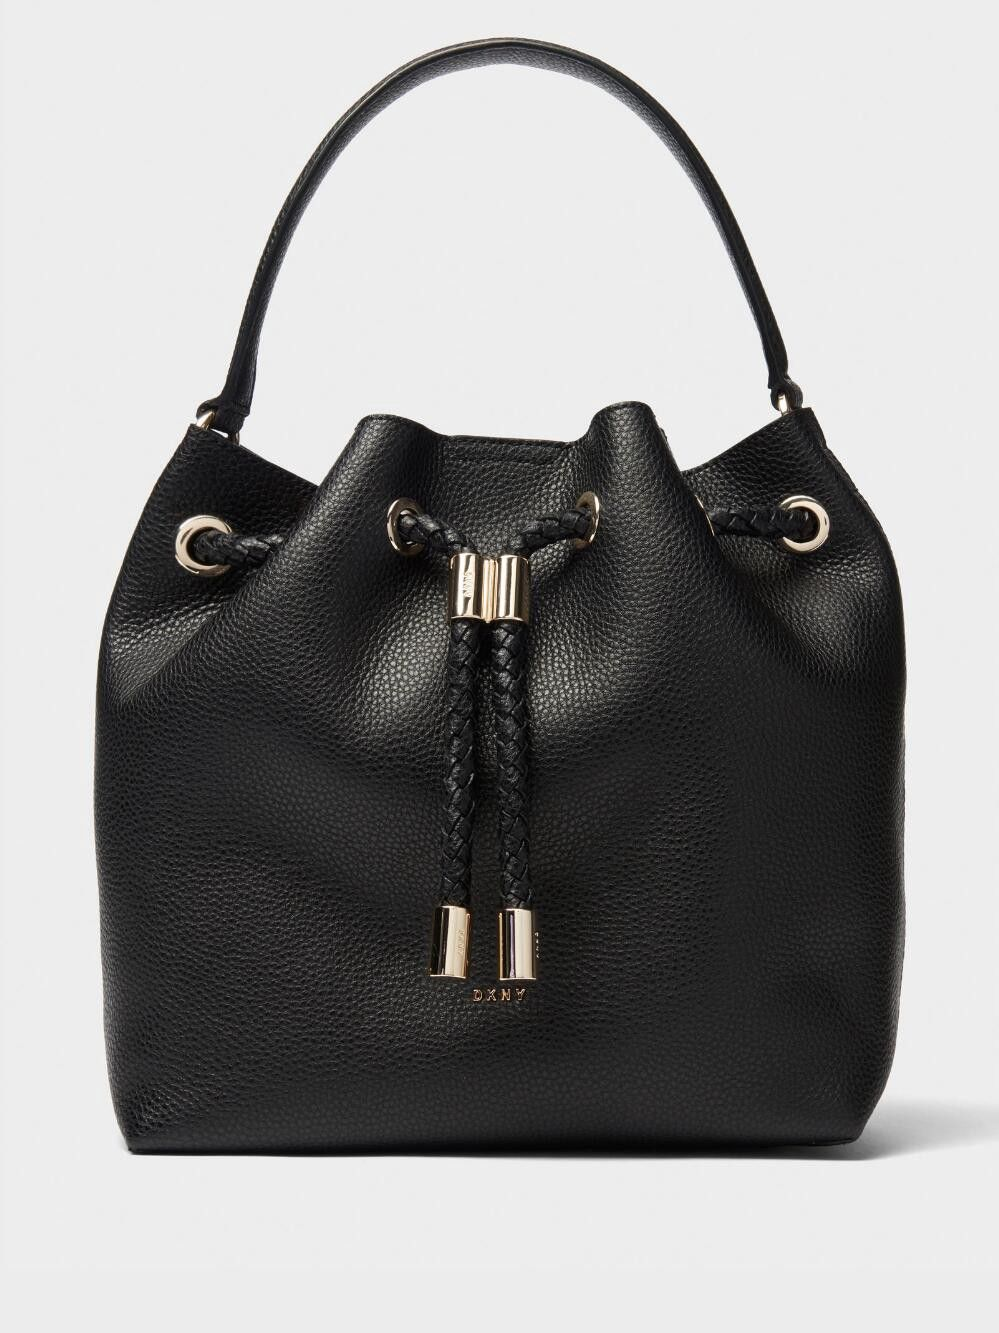 de96788d12 Dkny Alice Large Leather Bucket Bag - Black/Gold Unsized Item ...